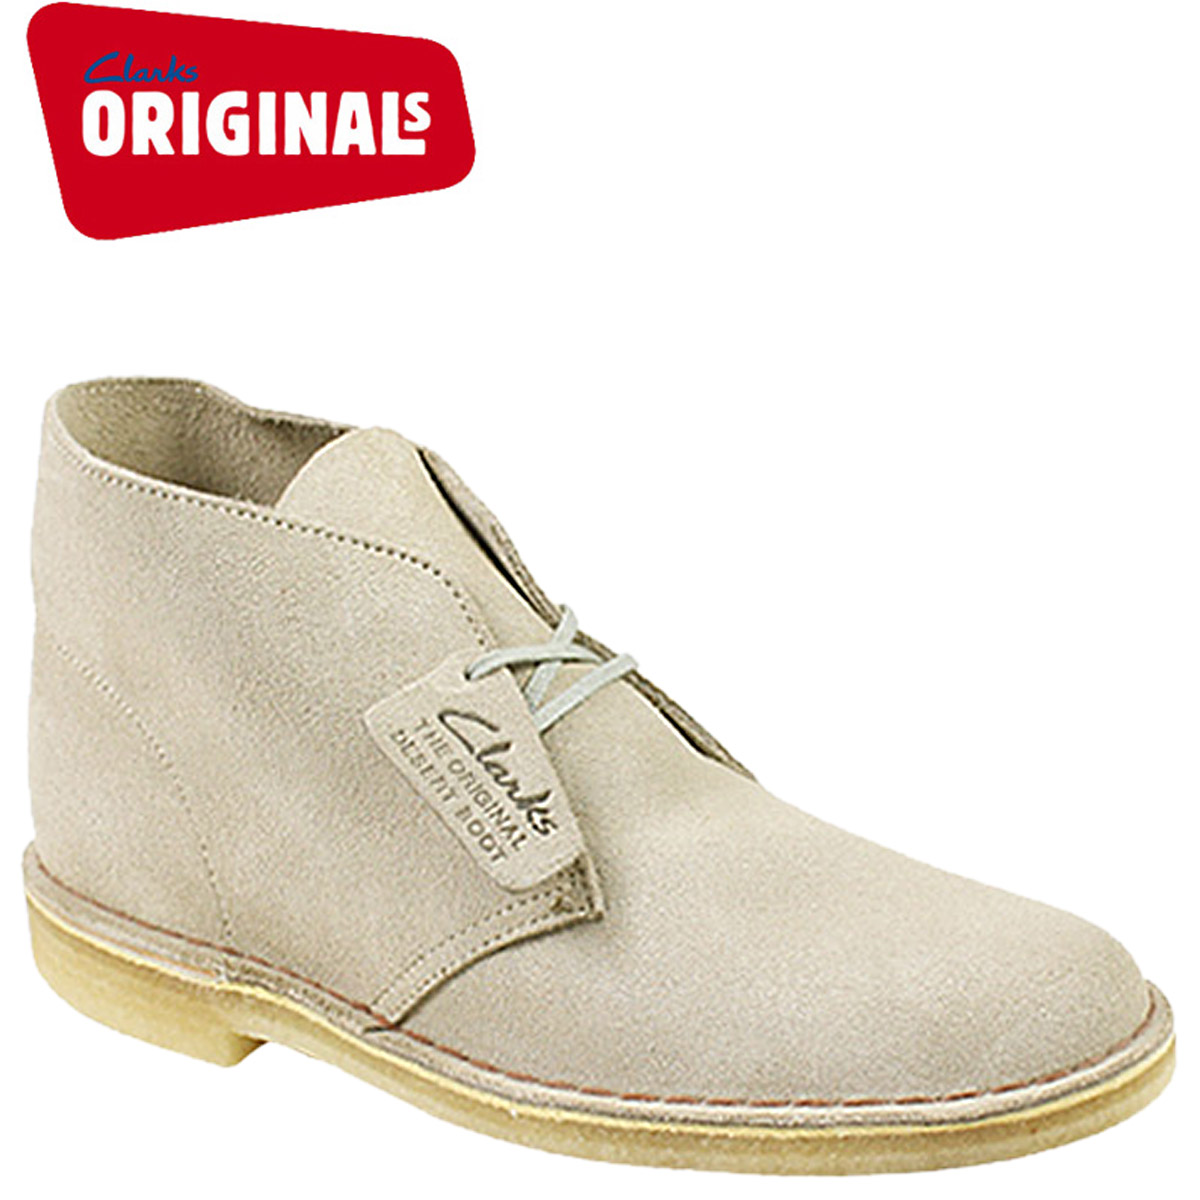 210c42b7fd17 Sugar Online Shop  Point 2 x Clarks originals Clarks ORIGINALS ...